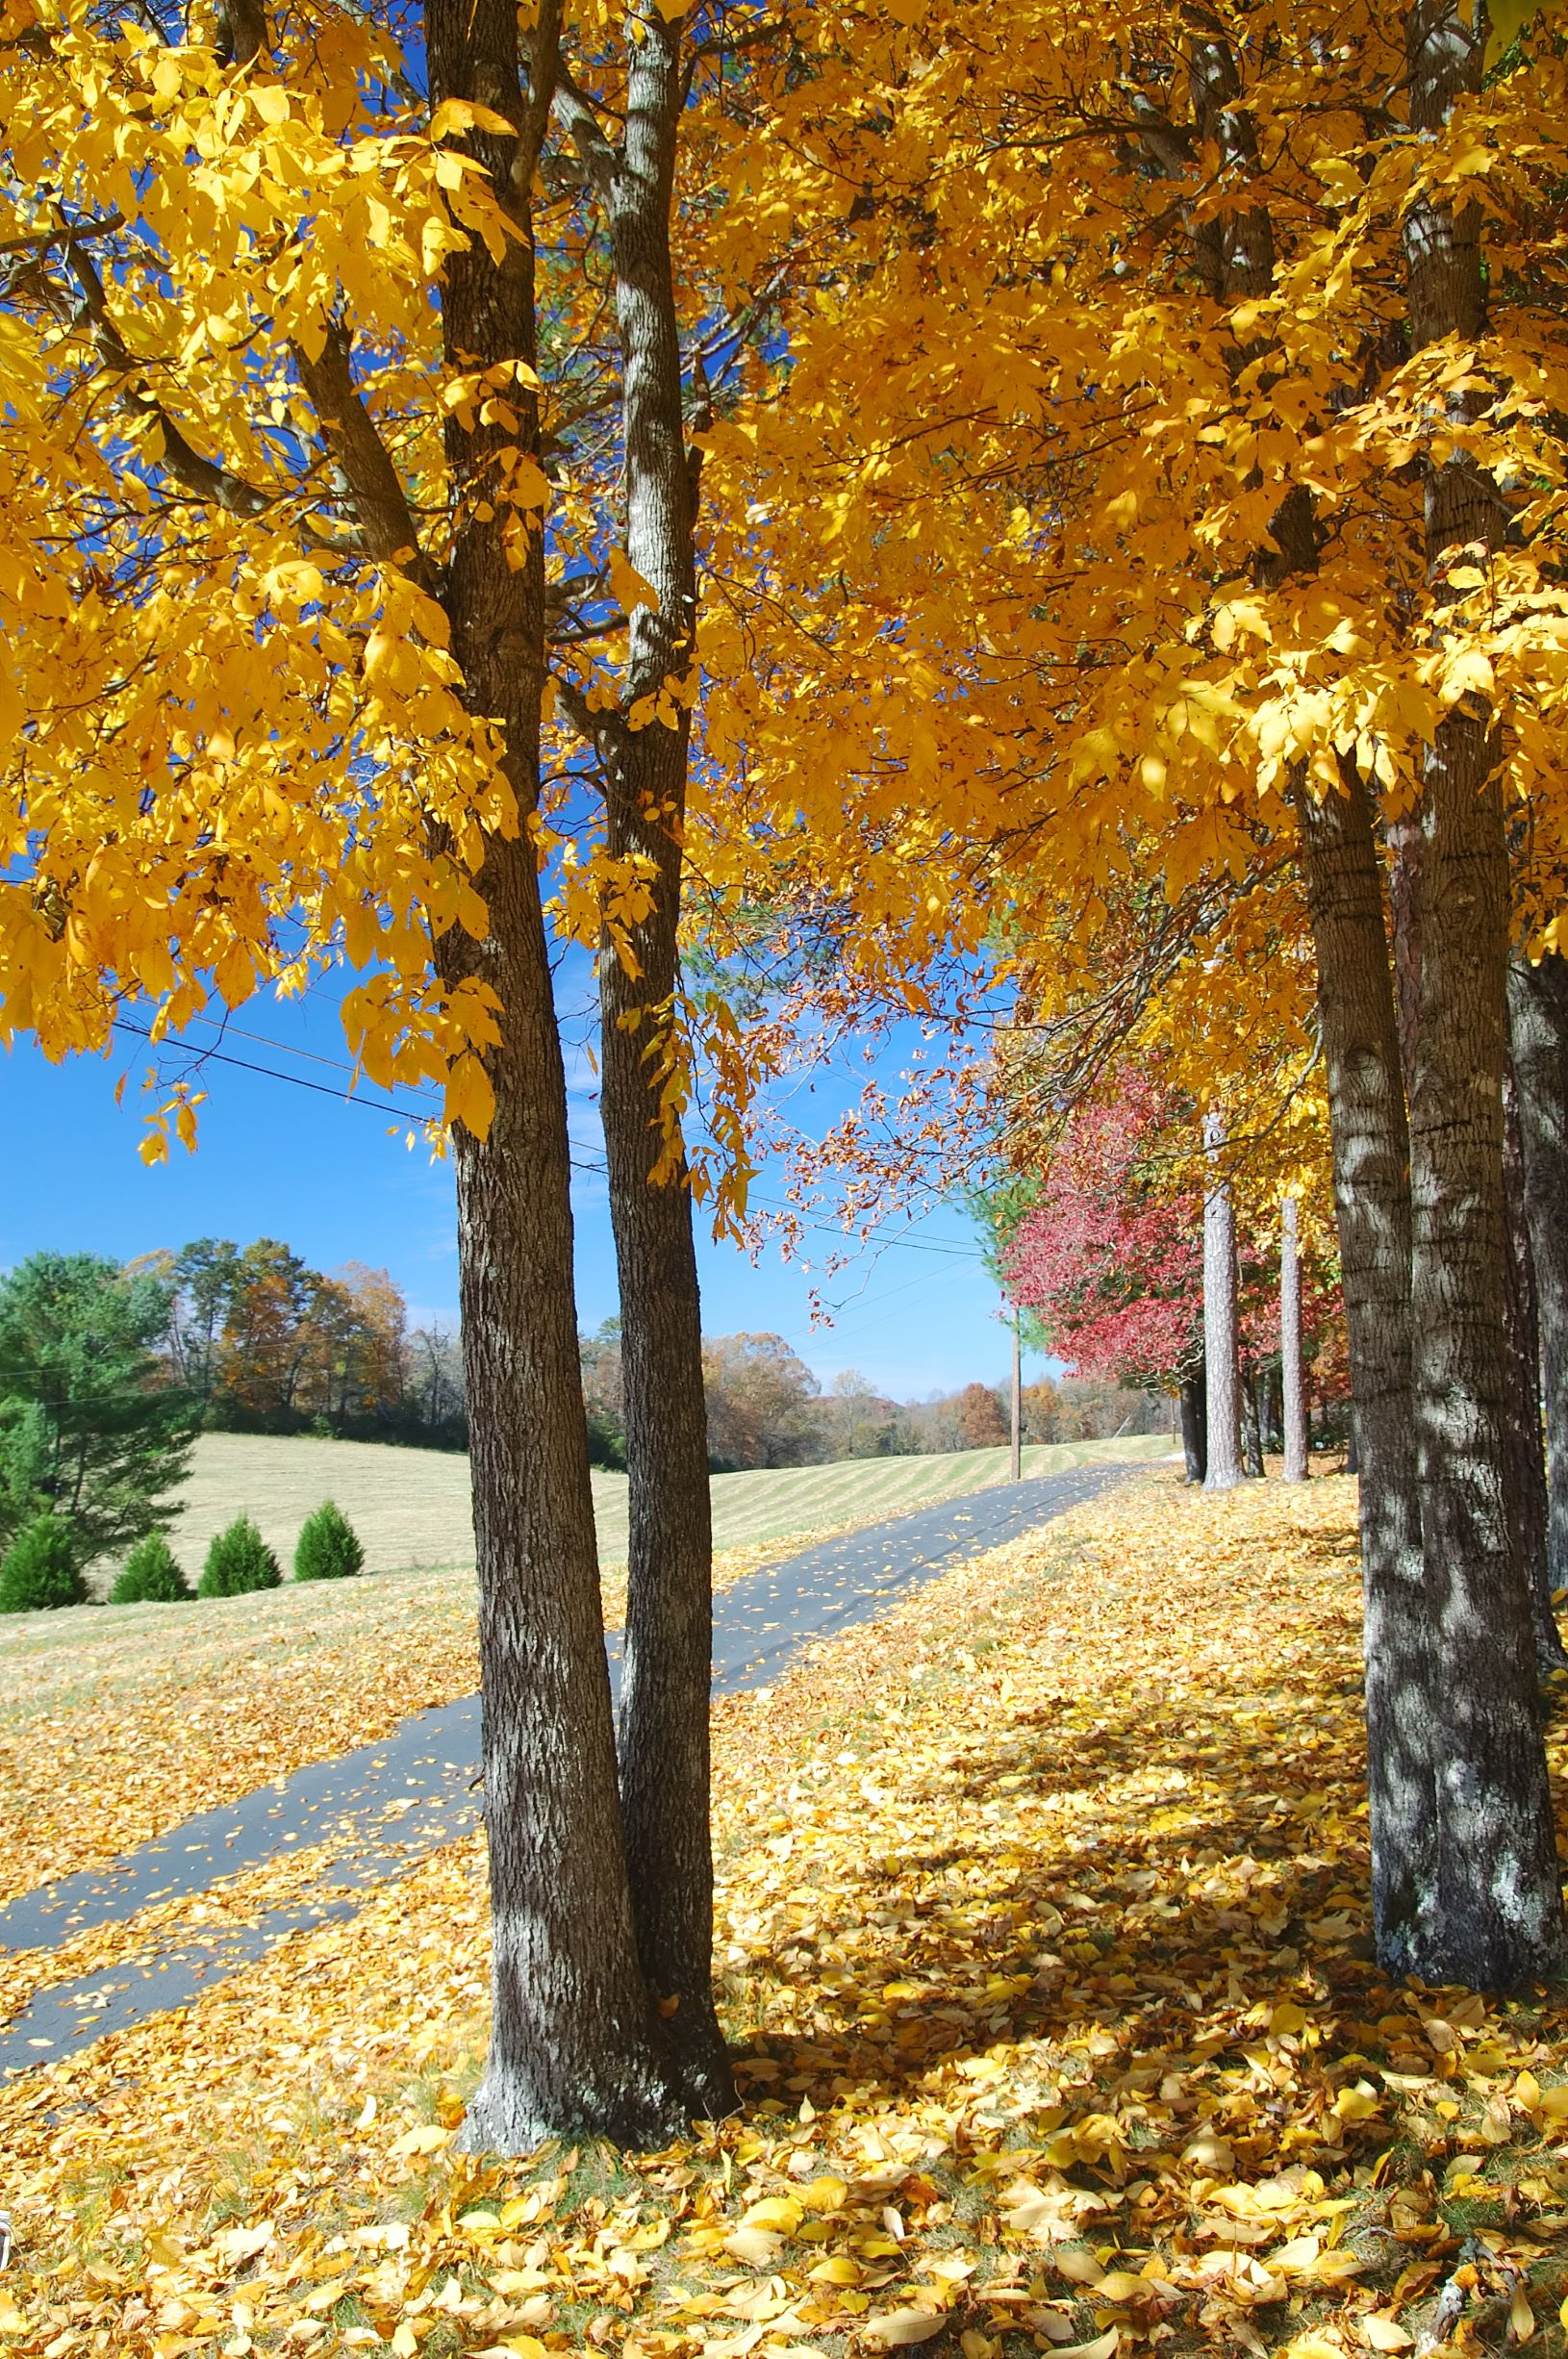 Photo of a stunning tree in Helen with golden yellow leaves during Fall in Georgia.